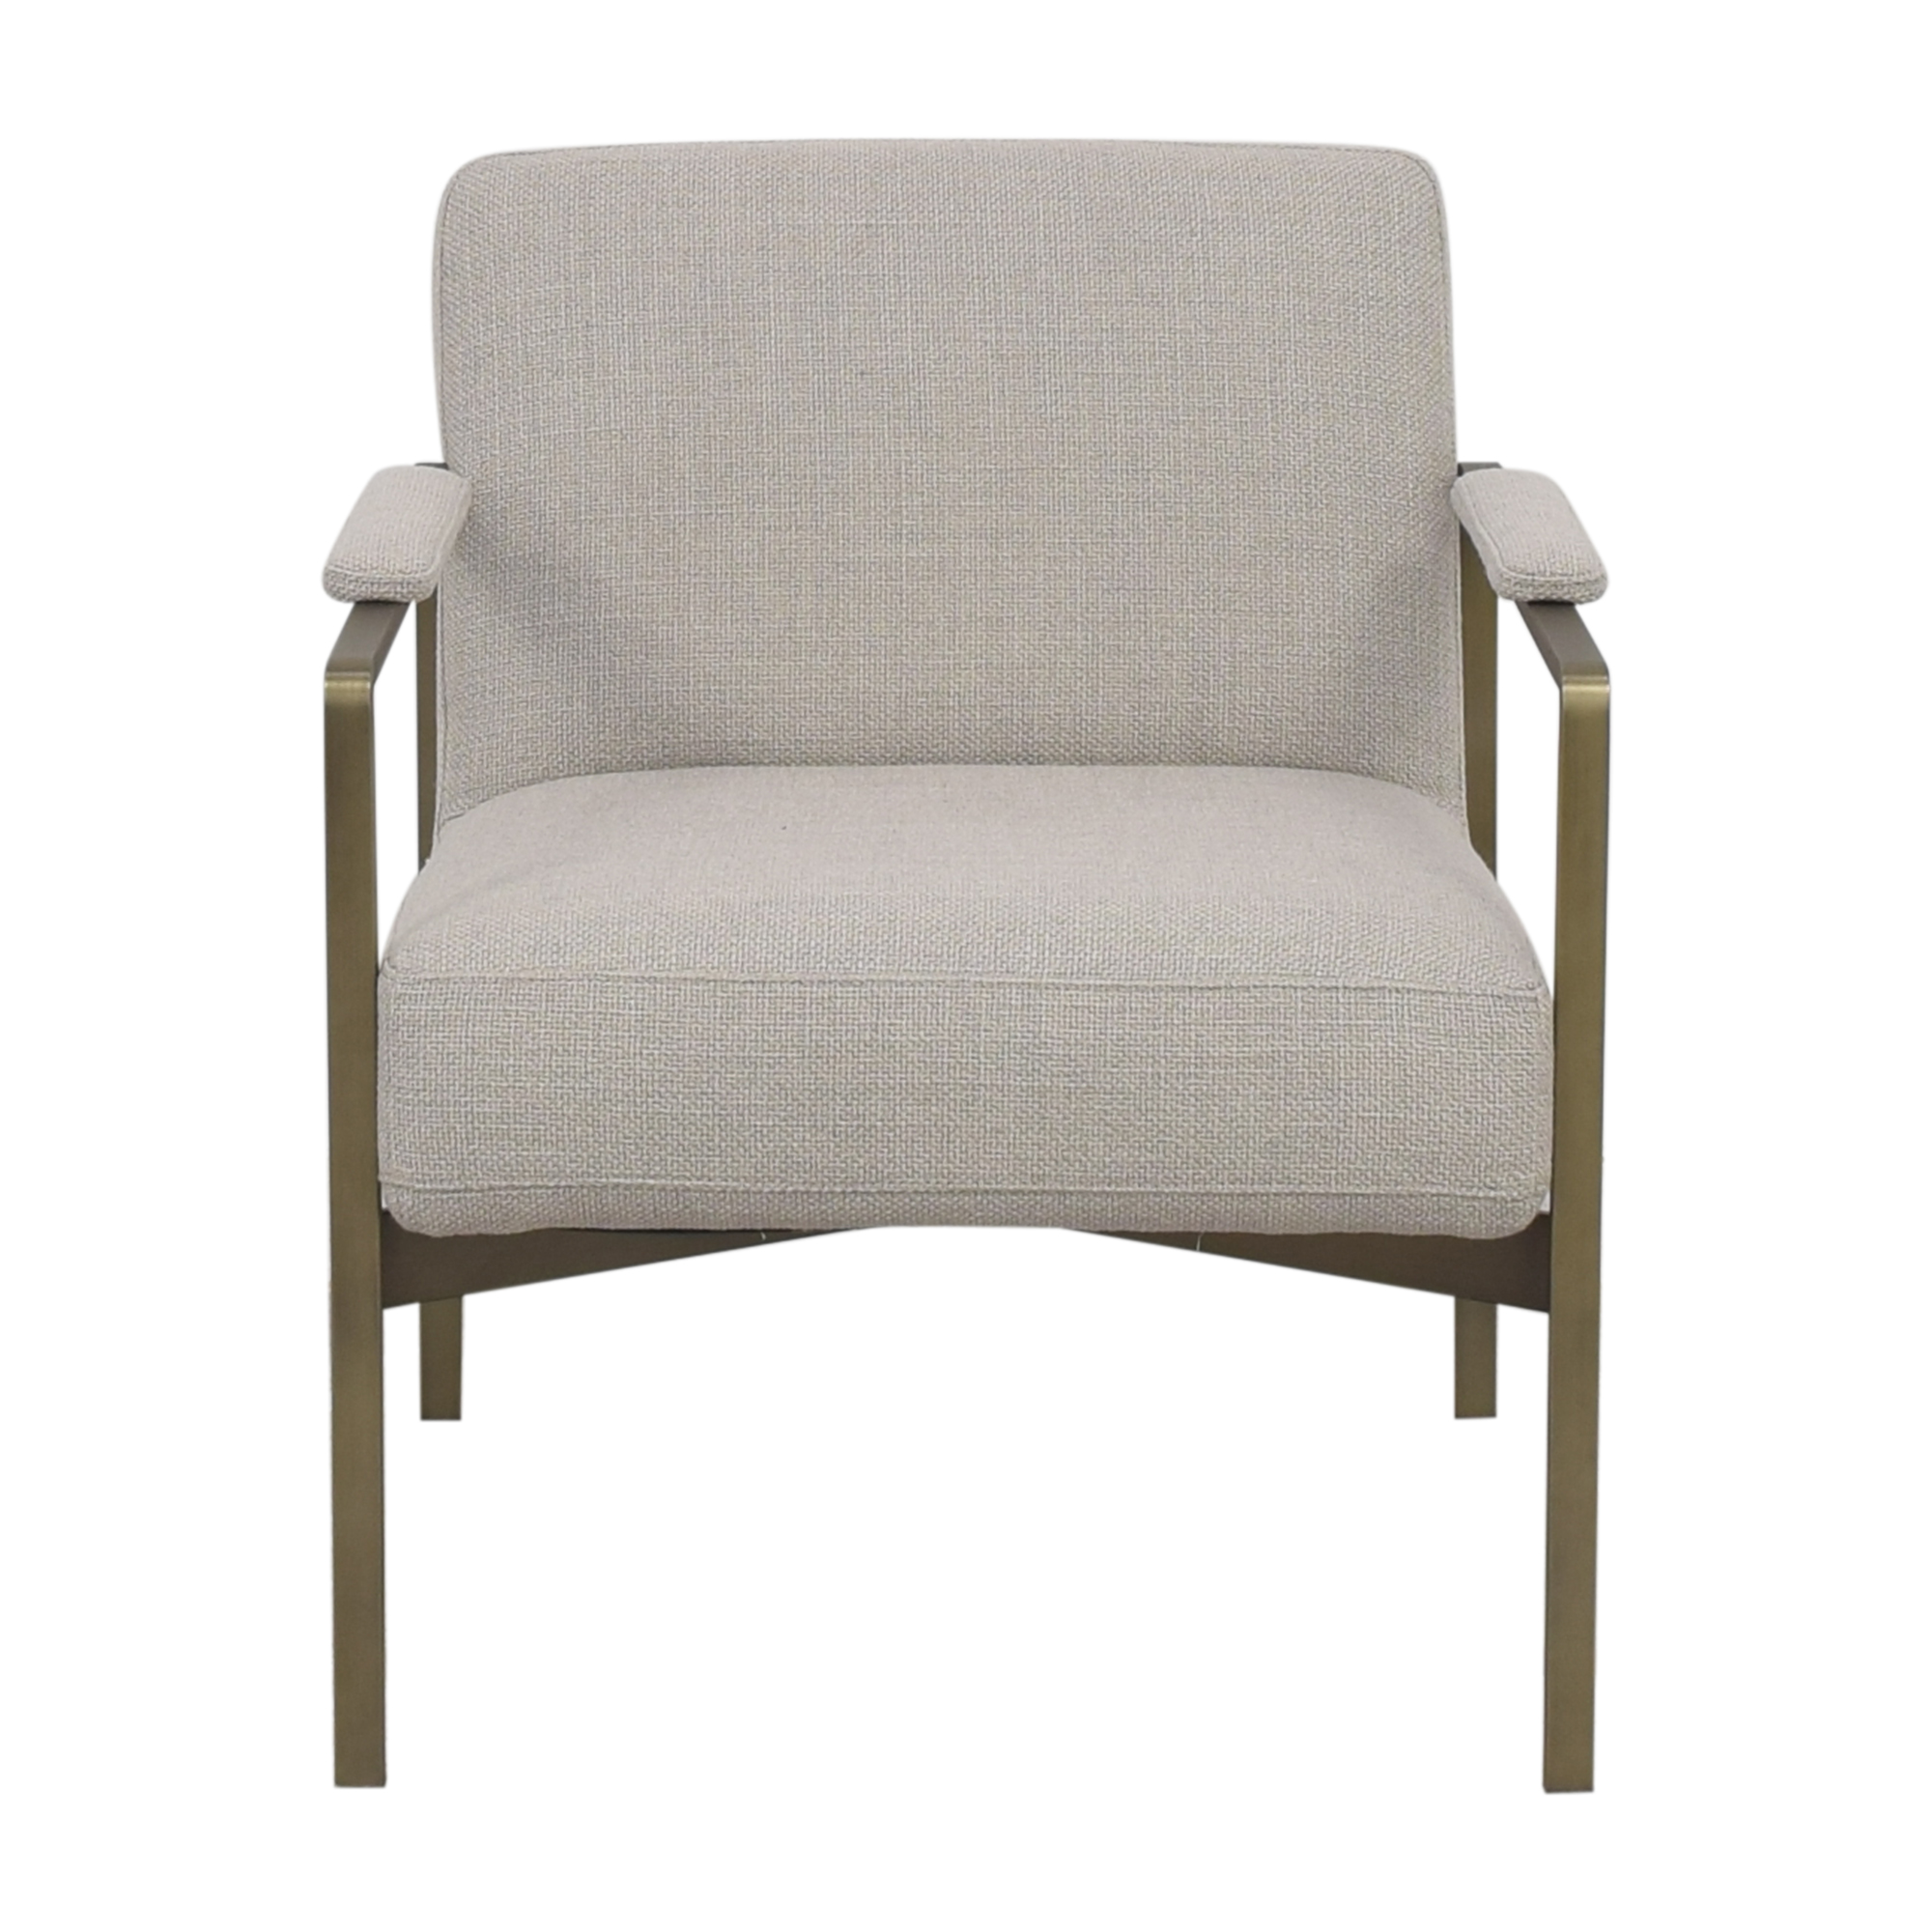 West Elm West Elm Highline Arm Chair pa